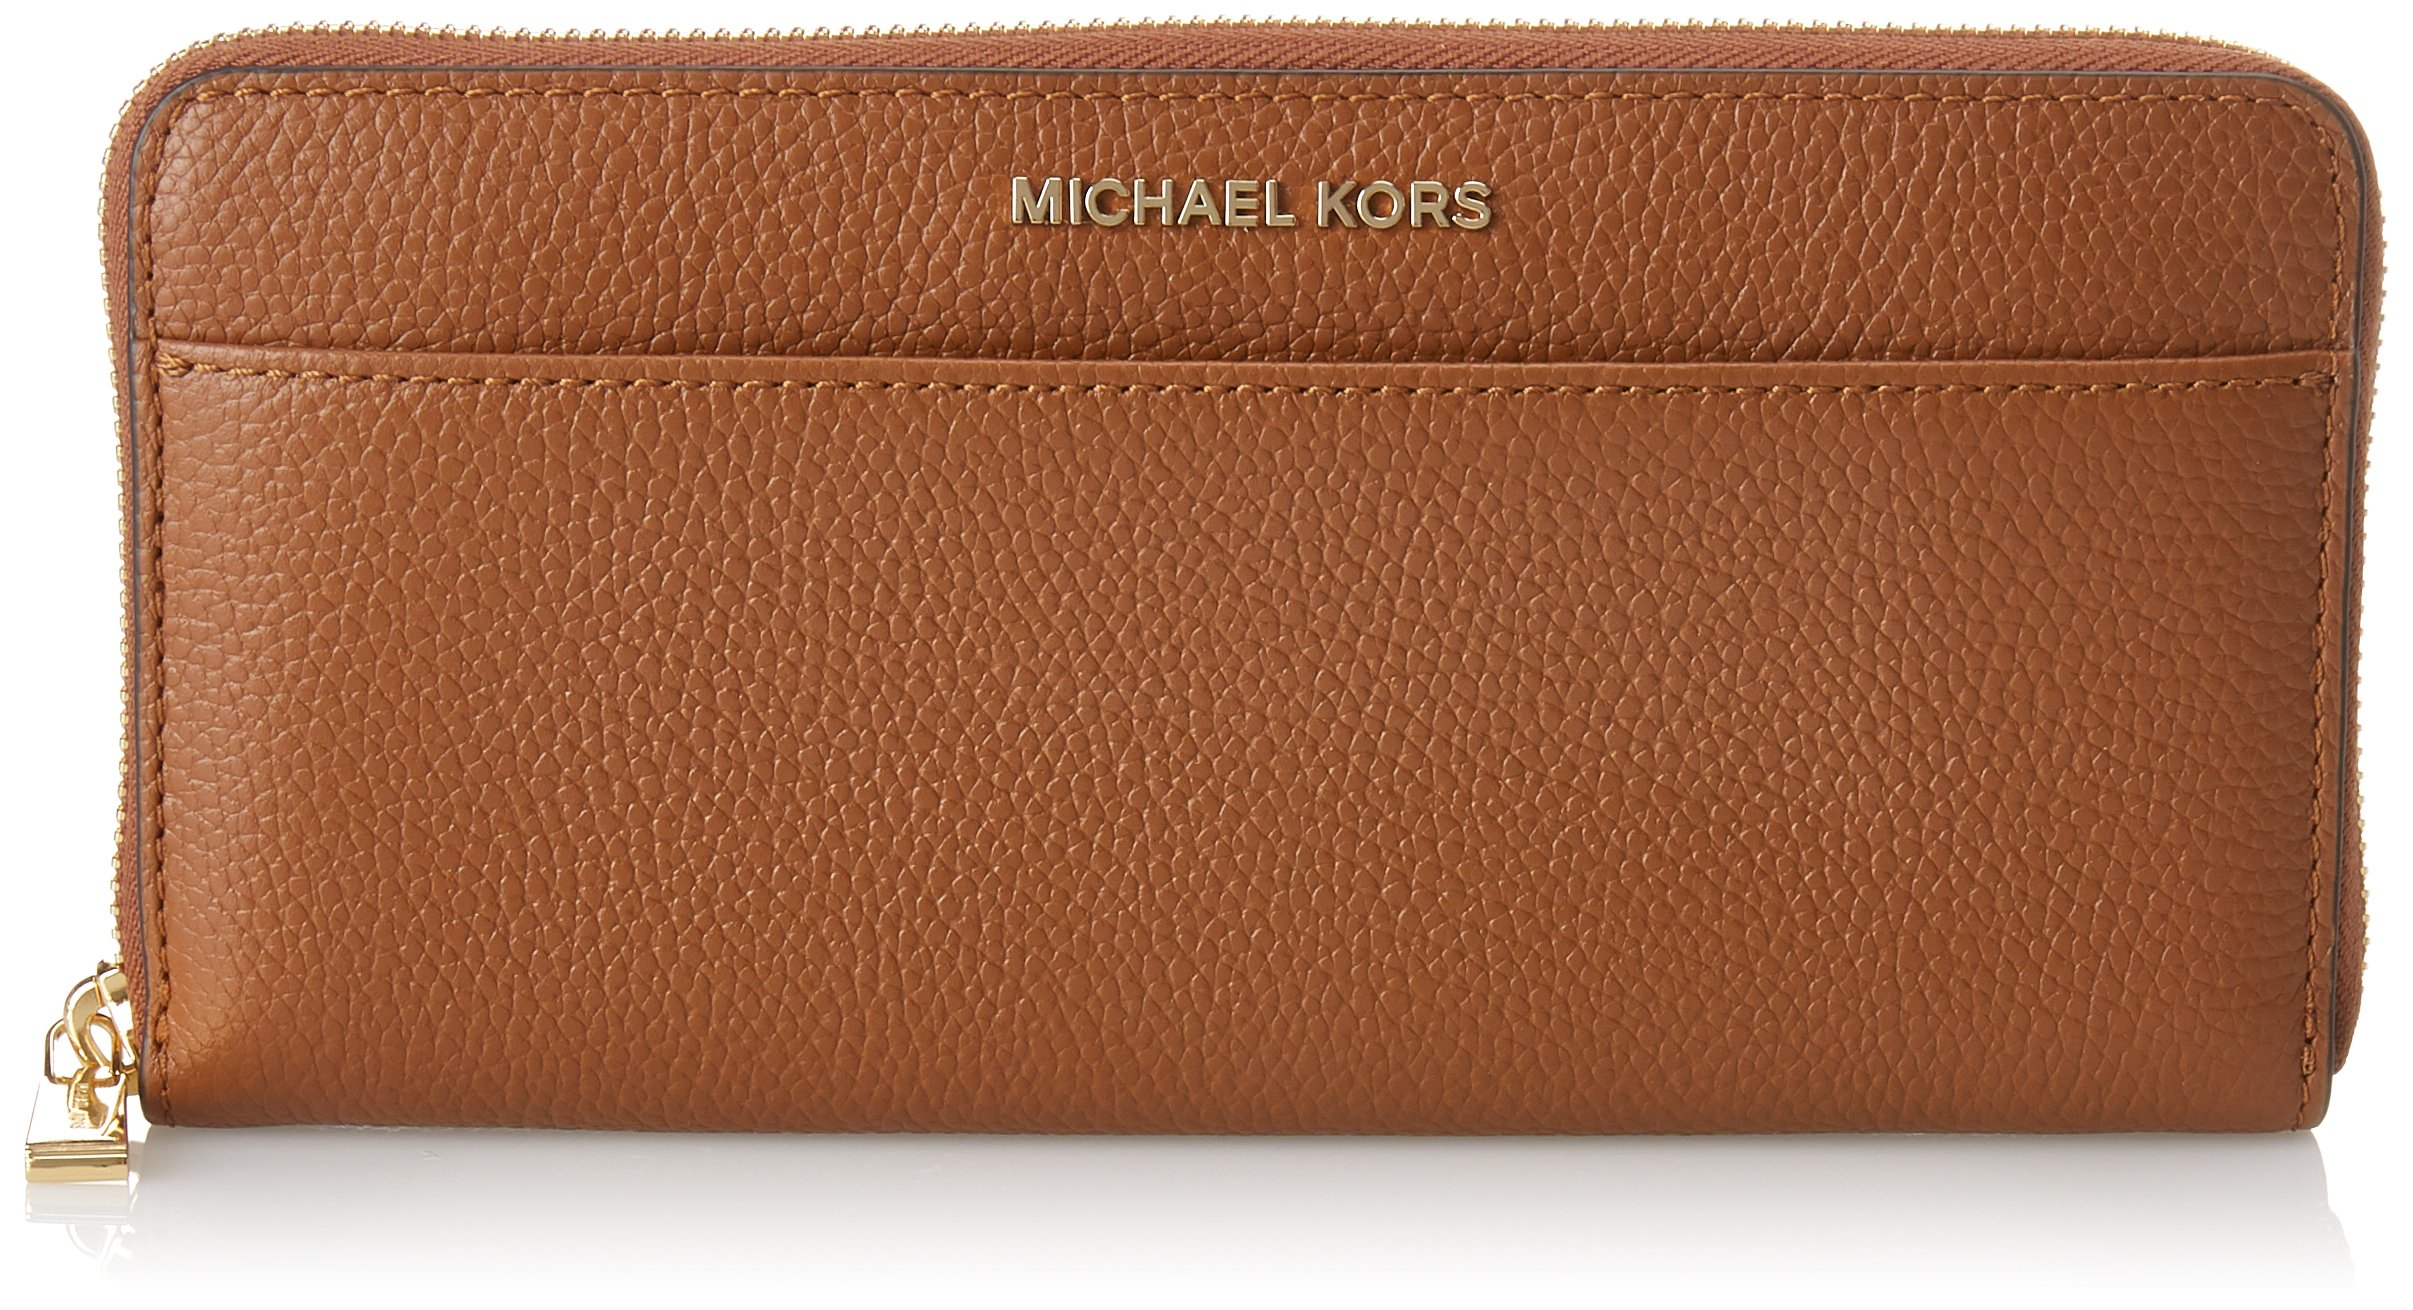 MICHAEL Michael Kors Women's Mercer Continental Wallet, Luggage, One Size